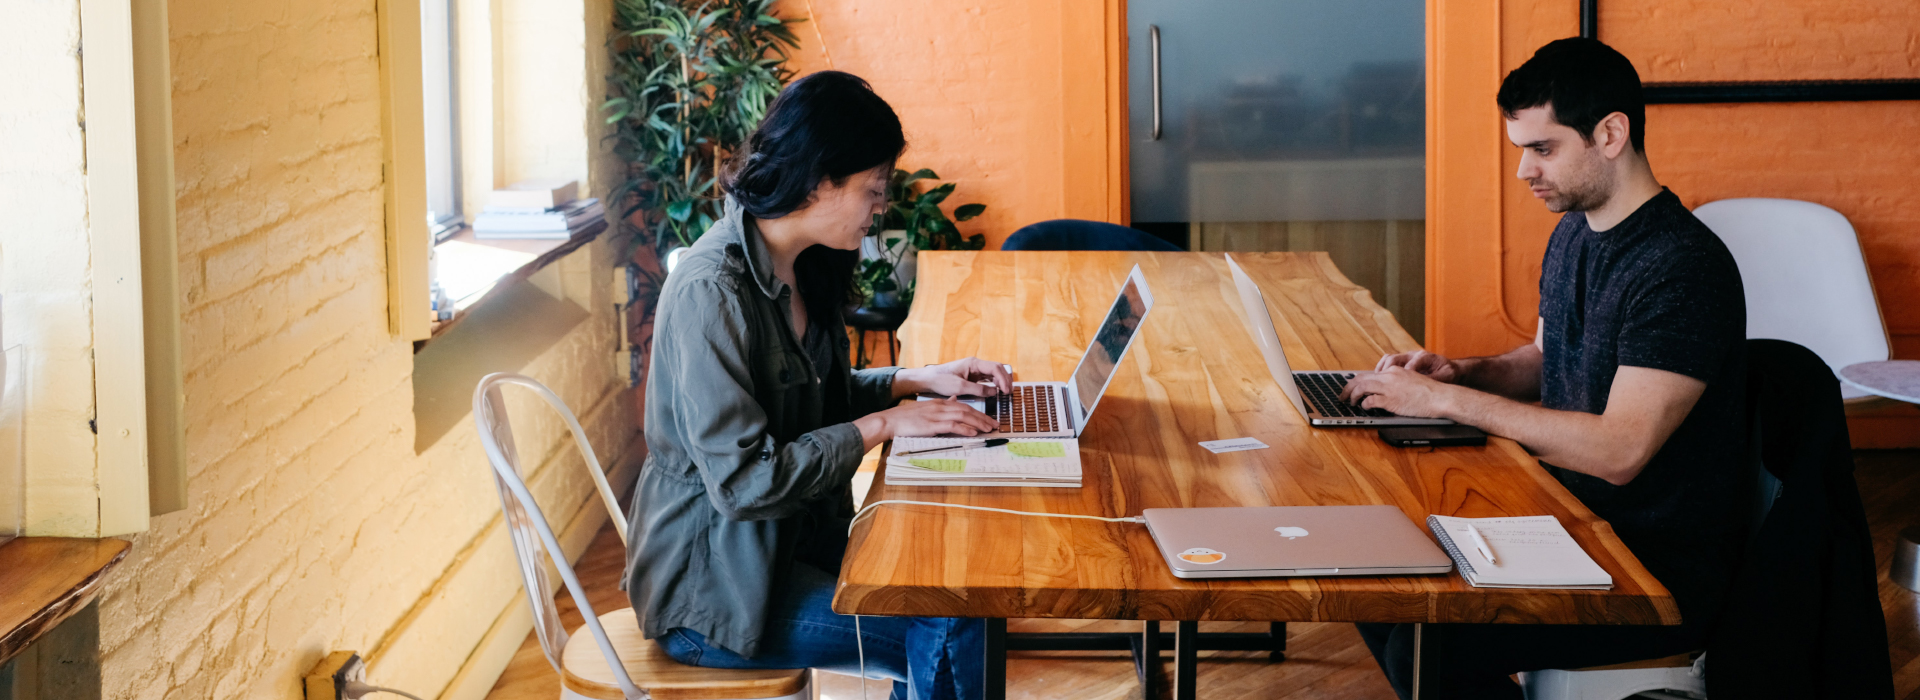 Couple working with laptops on wooden table